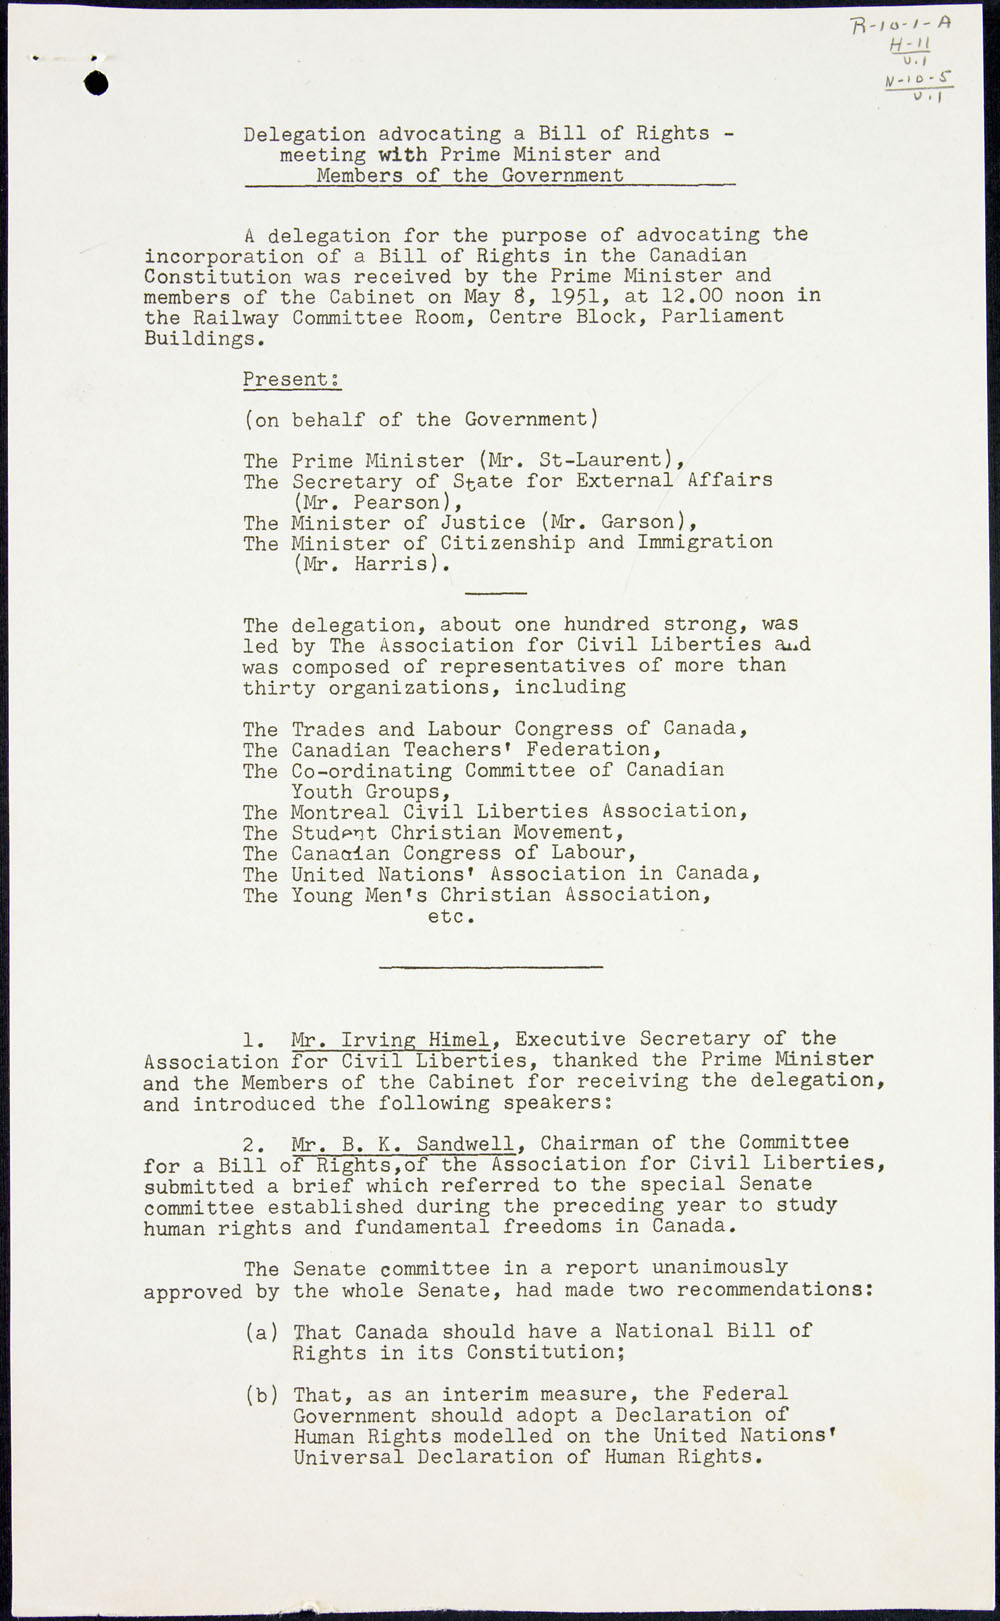 Page one of minutes recorded by Pierre Elliott Trudeau when a  delegation met with Prime Minister Louis St. Laurent to advocate a Bill of Rights, May 10, 1951